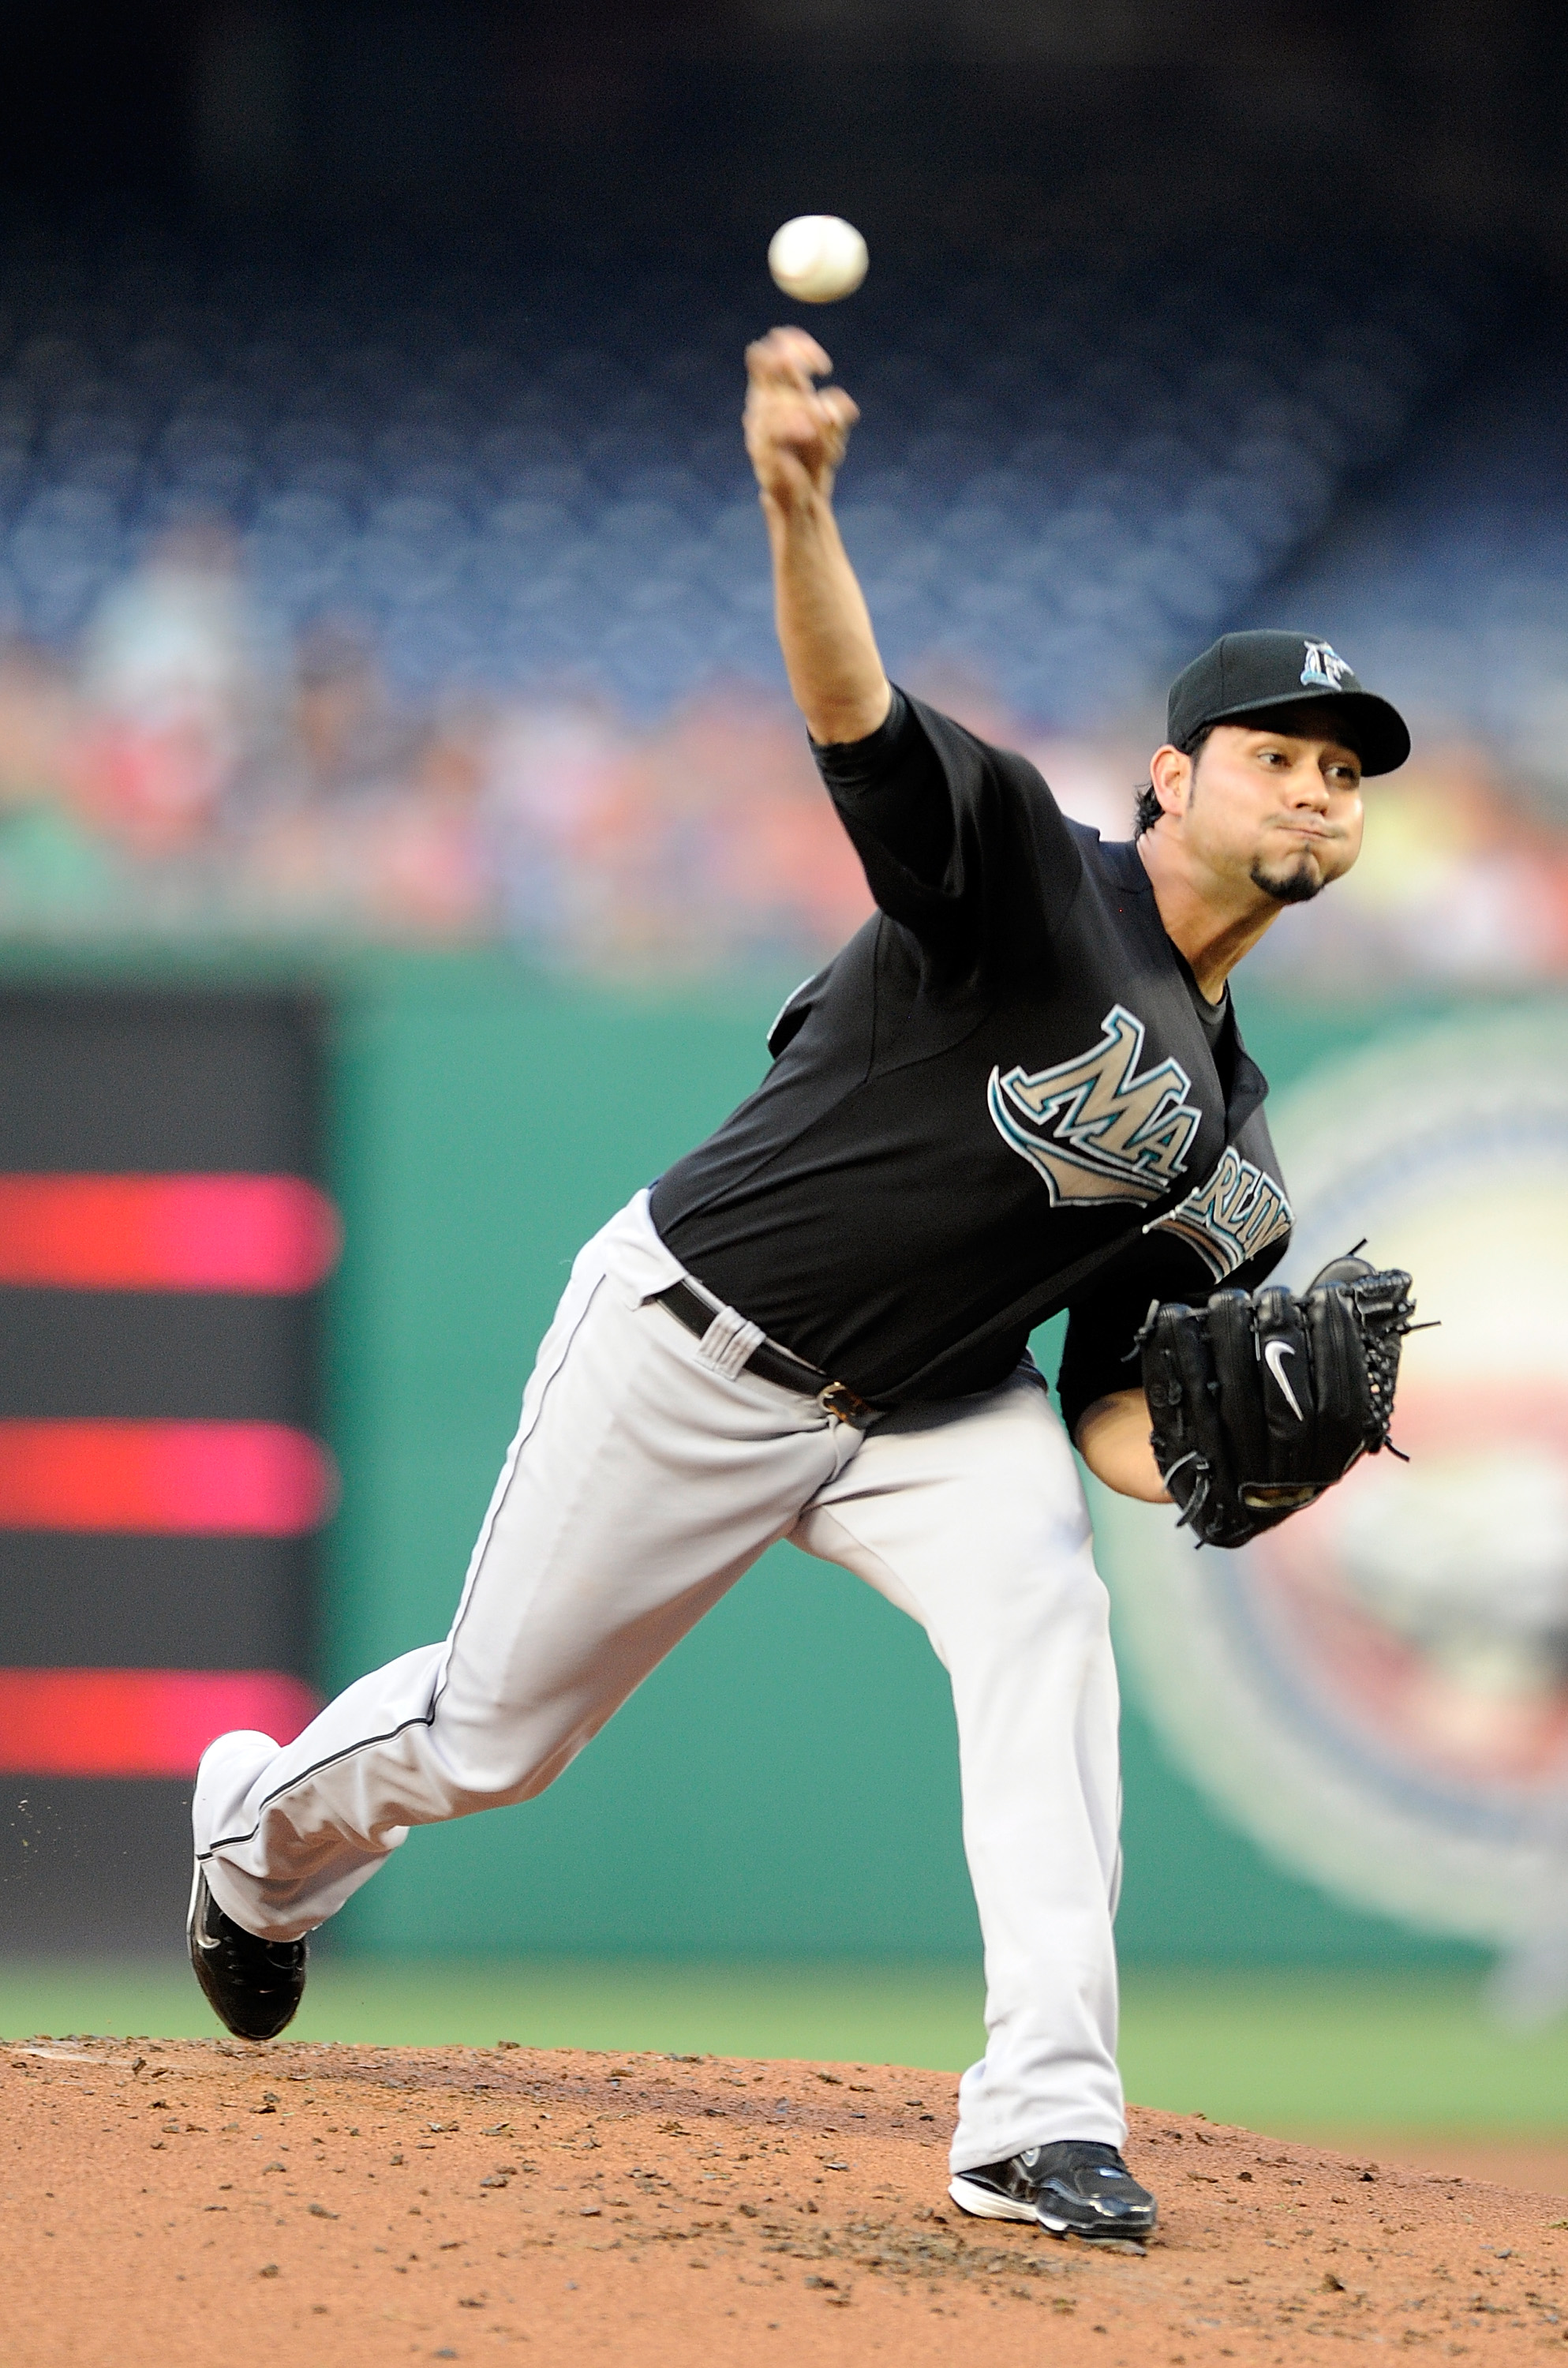 WASHINGTON - AUGUST 10:  Anibal Sanchez #19 of the Florida Marlins pitches against the Washington Nationals at Nationals Park on August 10, 2010 in Washington, DC.  (Photo by Greg Fiume/Getty Images)